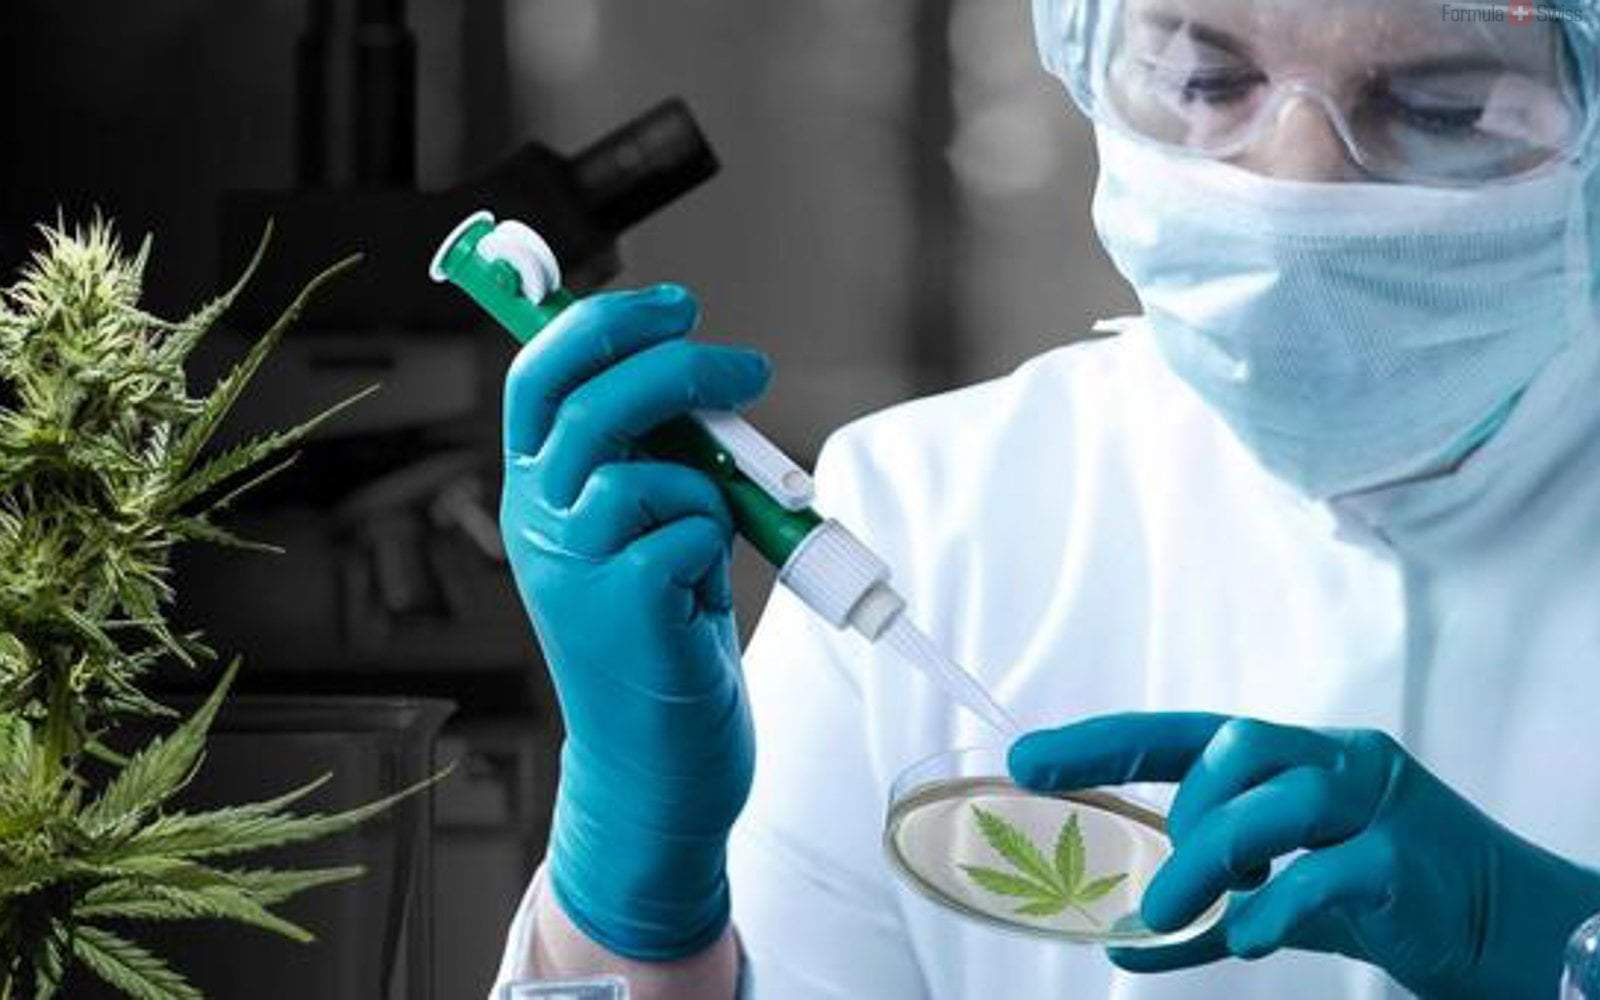 CBD oil to deal with cancer - fact or fiction?